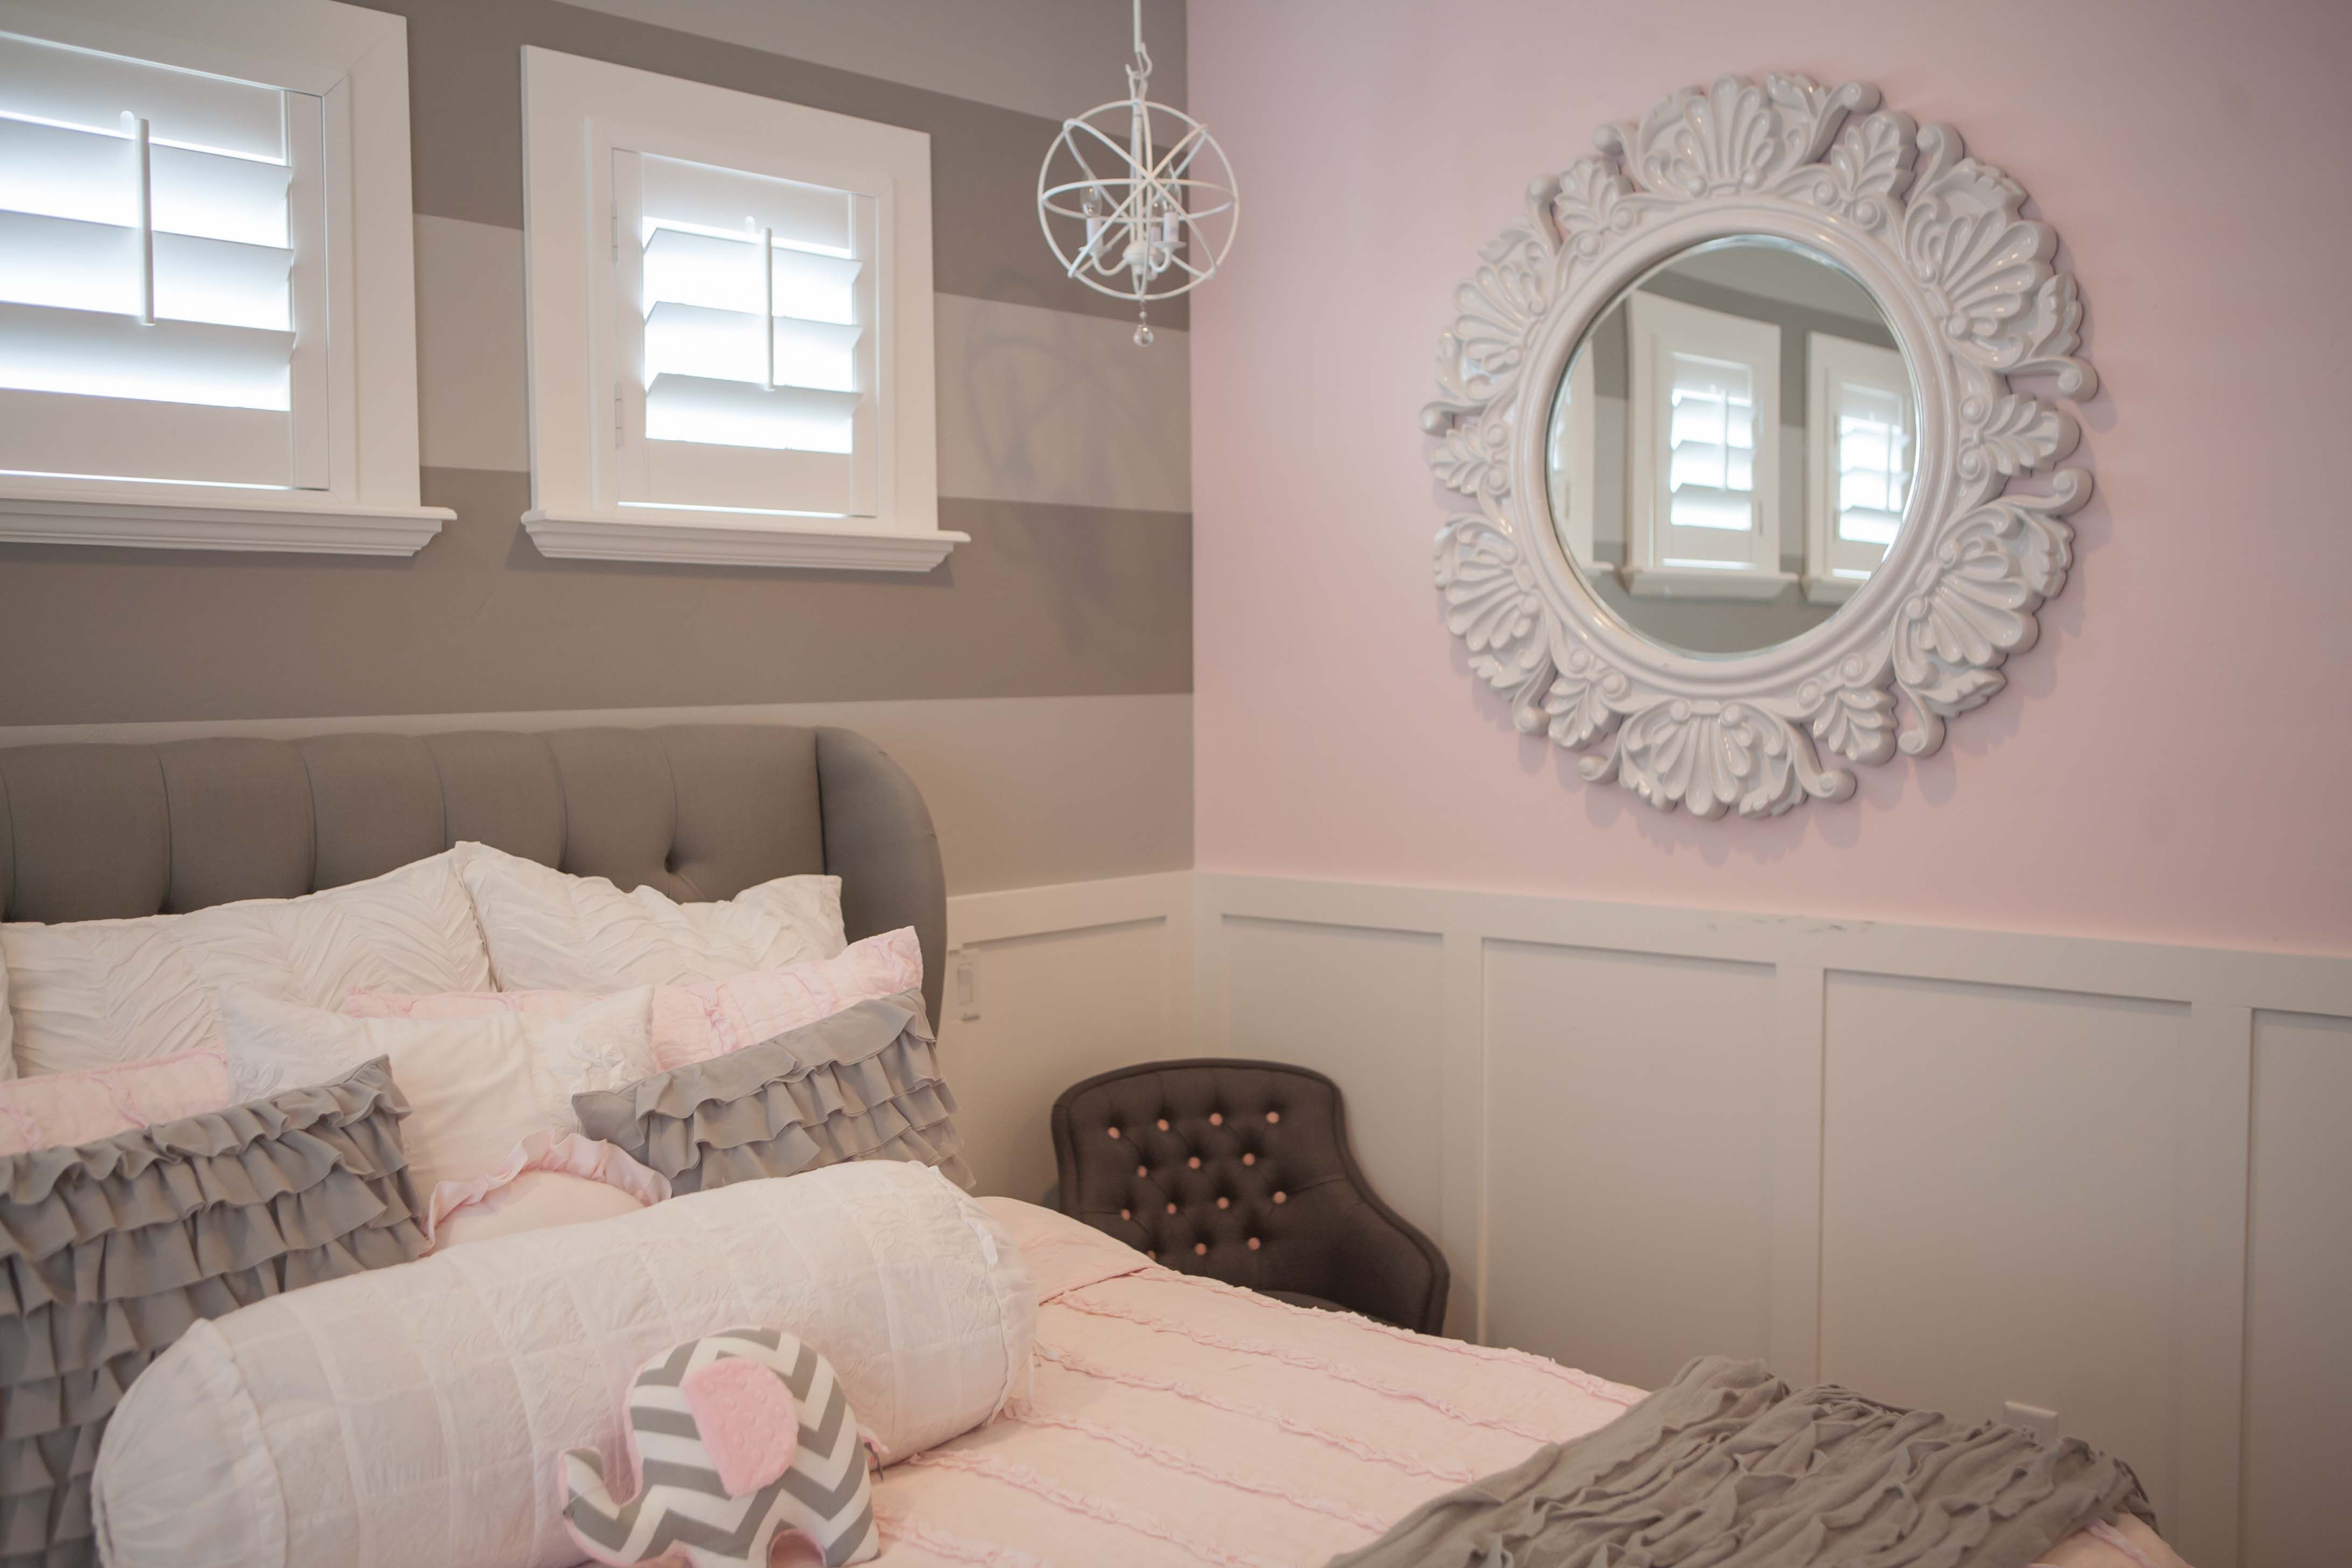 Light Gray Med Gray Horizontally Striped Walls Perfect For A